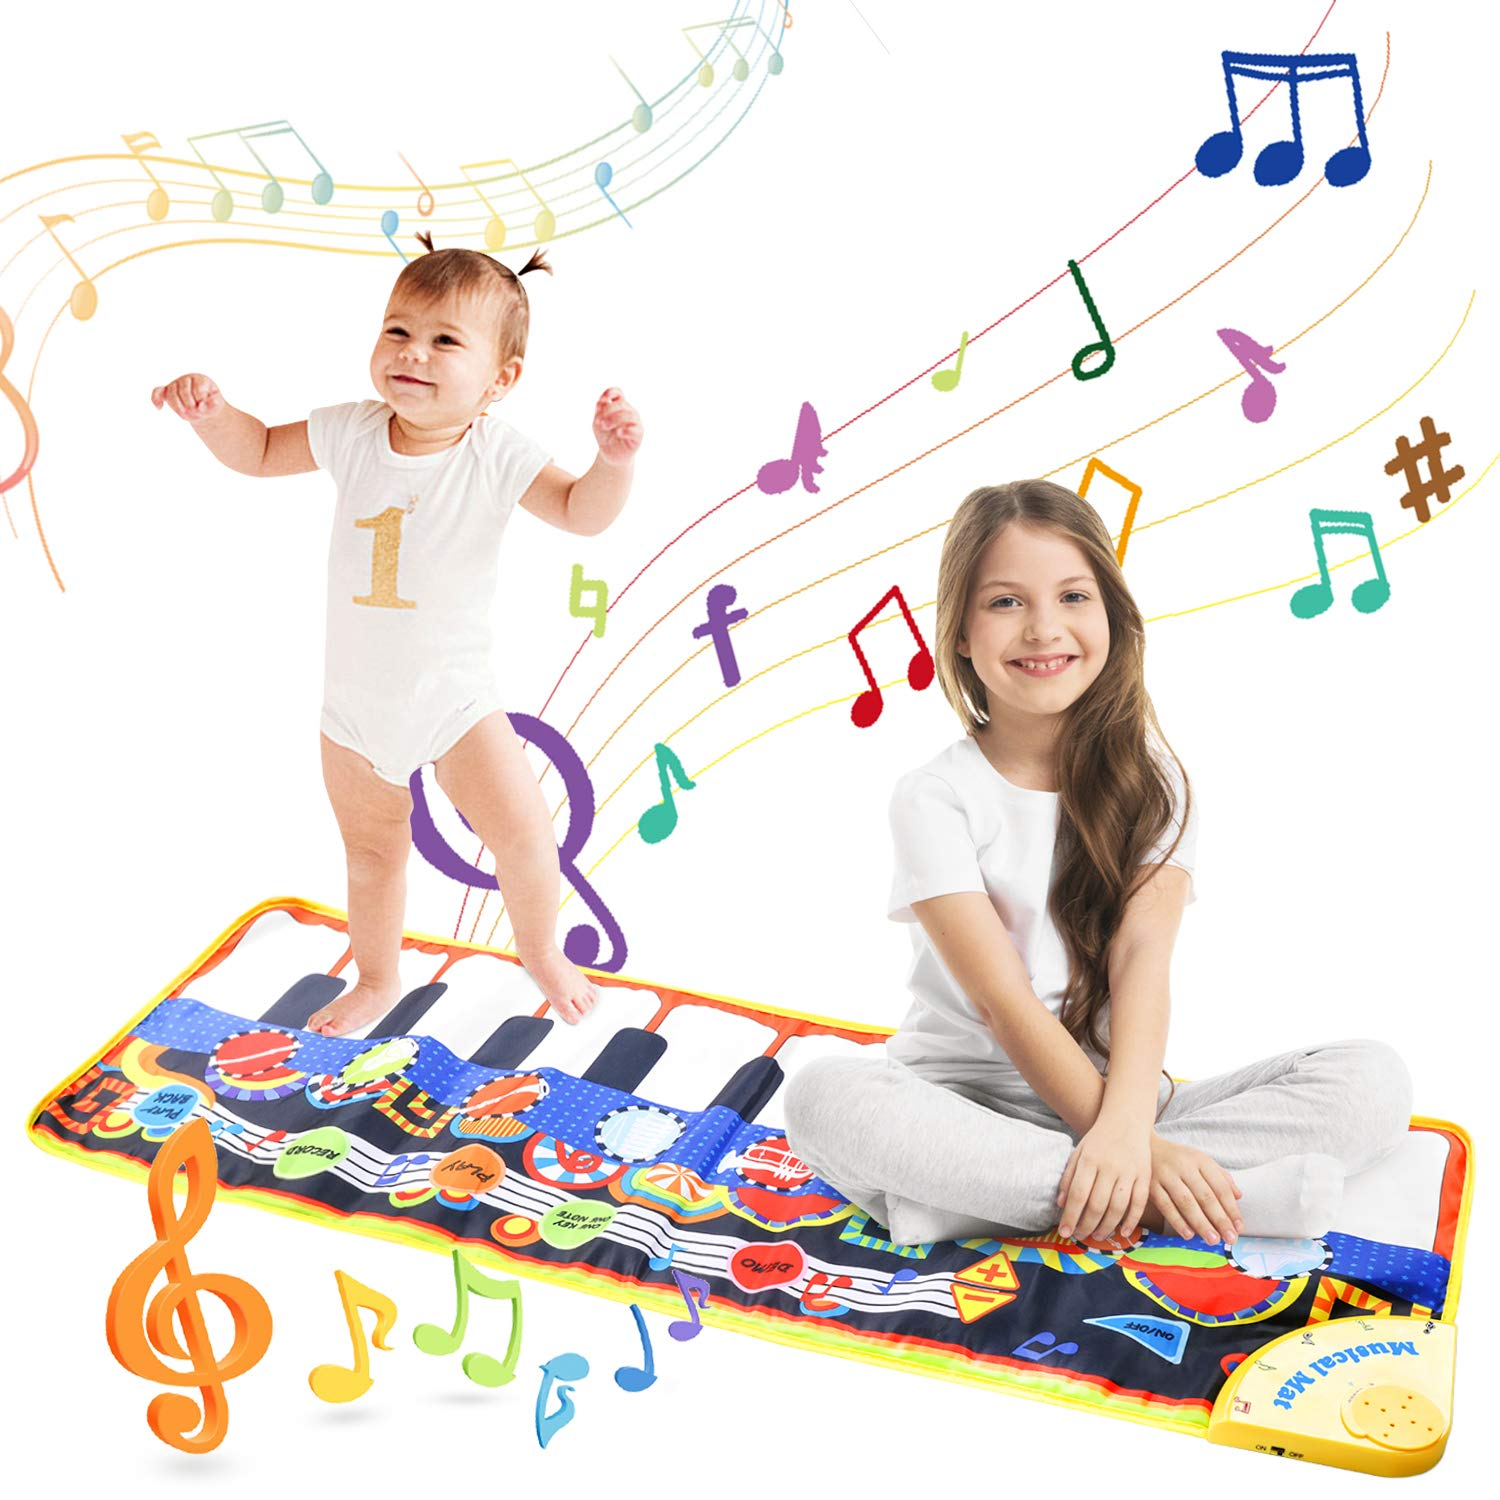 Musical Piano Mat, Vimpro19 Keys Piano Keyboard Play Mat Children Foot Touch Play Portable Musical Blanket Build-in Speaker & Recording Function for Kids Toddler Girls Boys 43.3'' X14.2'' by Vimpro